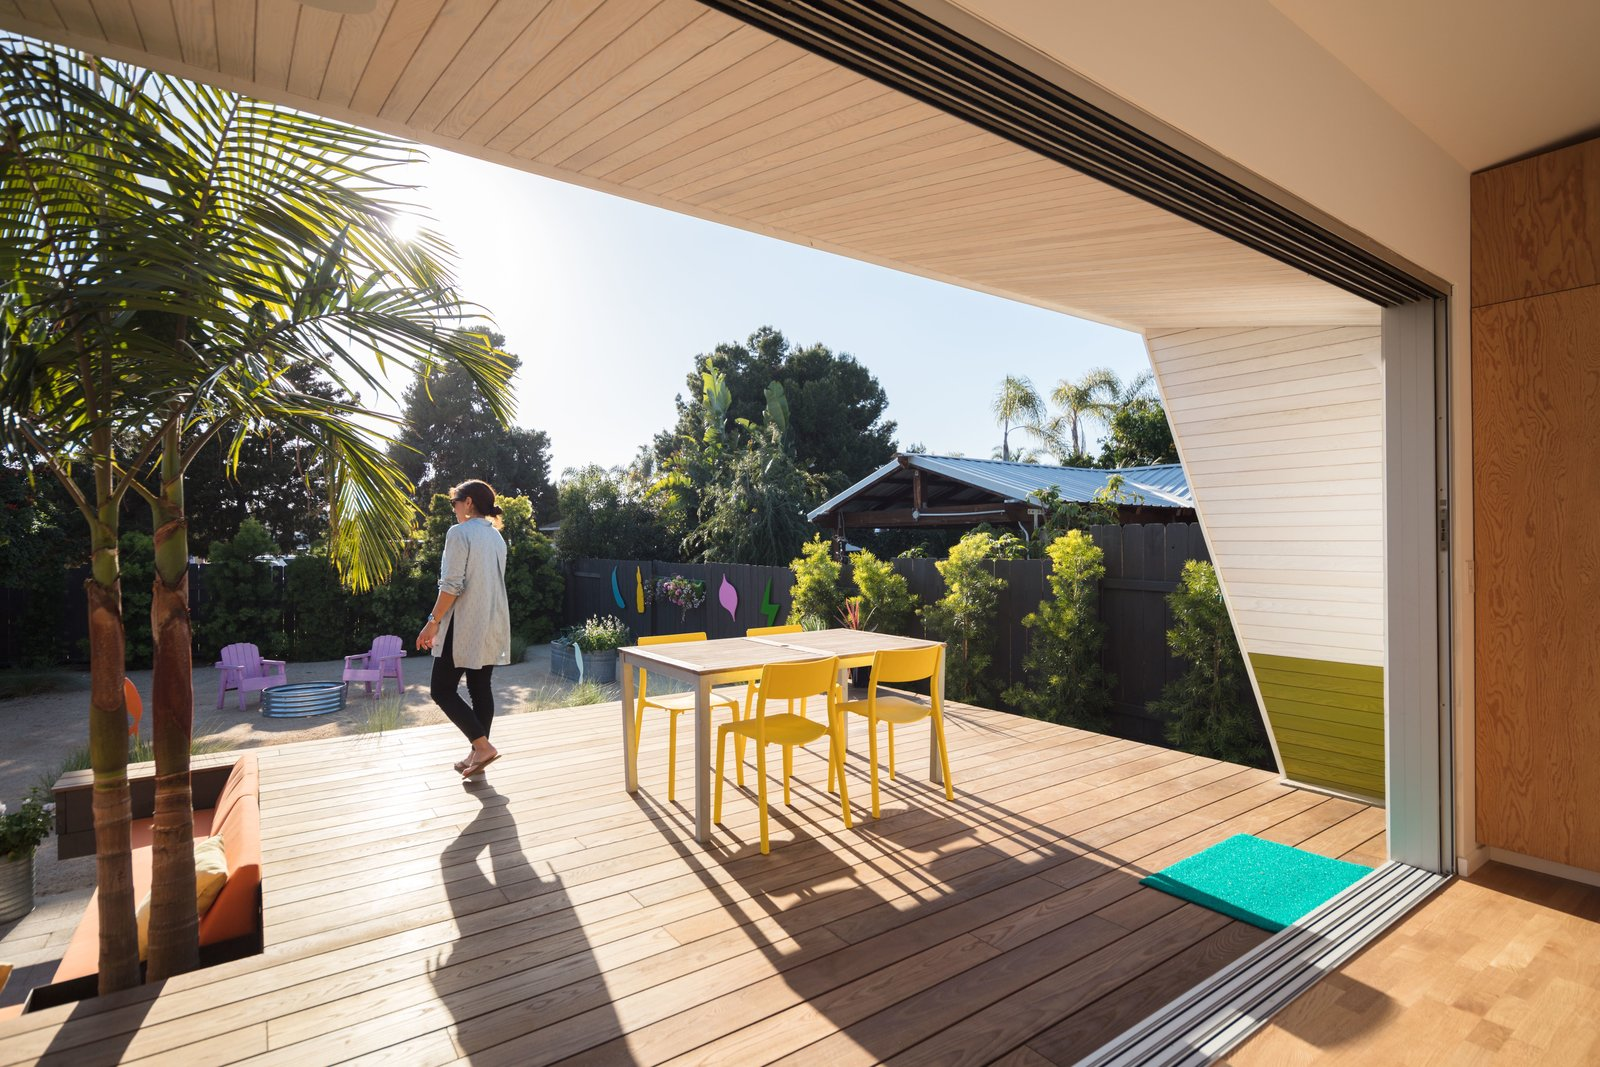 Thermory.com wood decking + Western Window Systems series 600 multi-slide glass doors  The Beach Lab by Surfside Projects